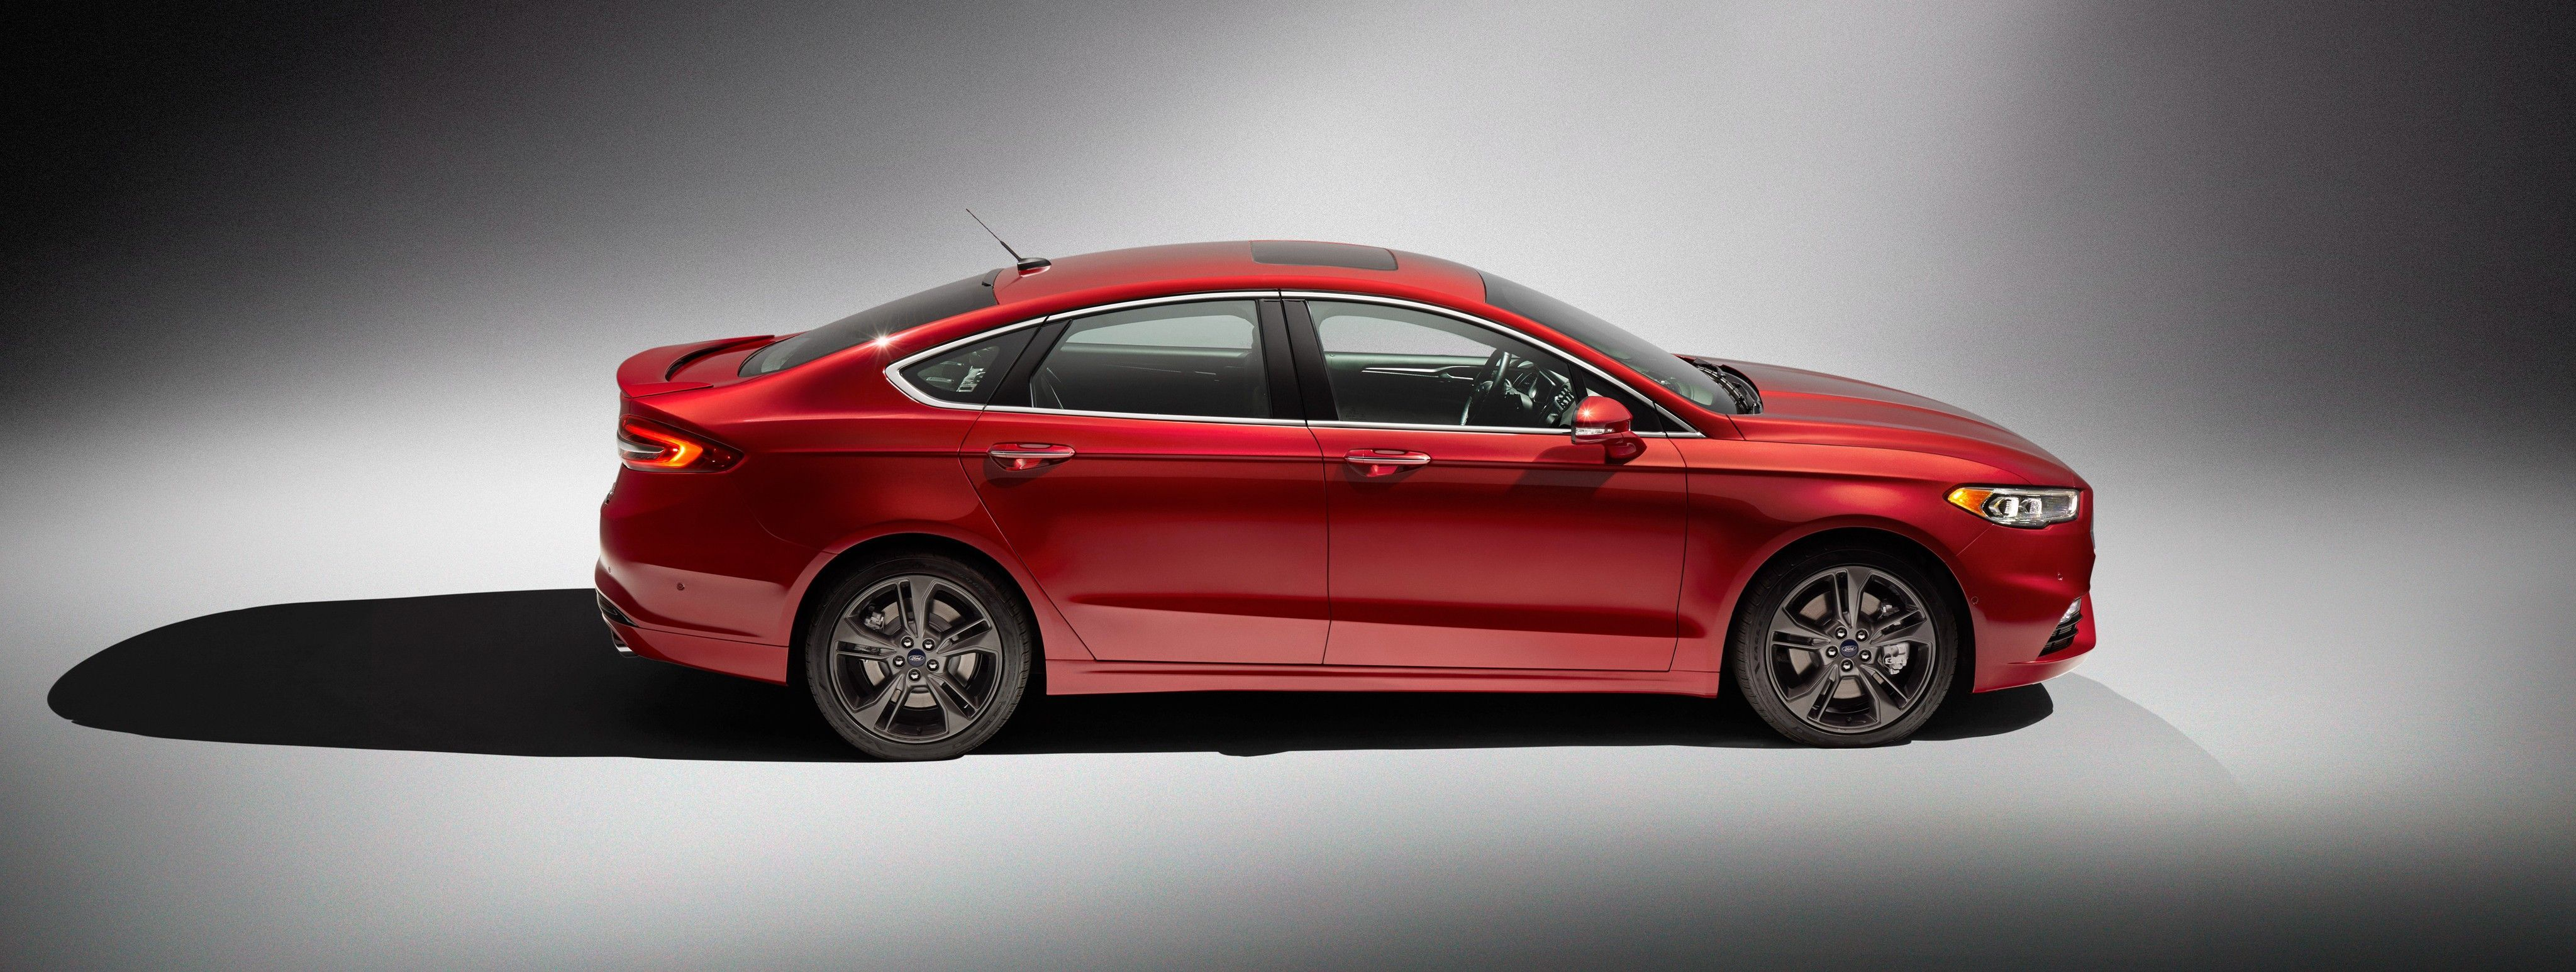 2020 Ford Mondeo Rumors Ford Fusion Camry Toyota Camry